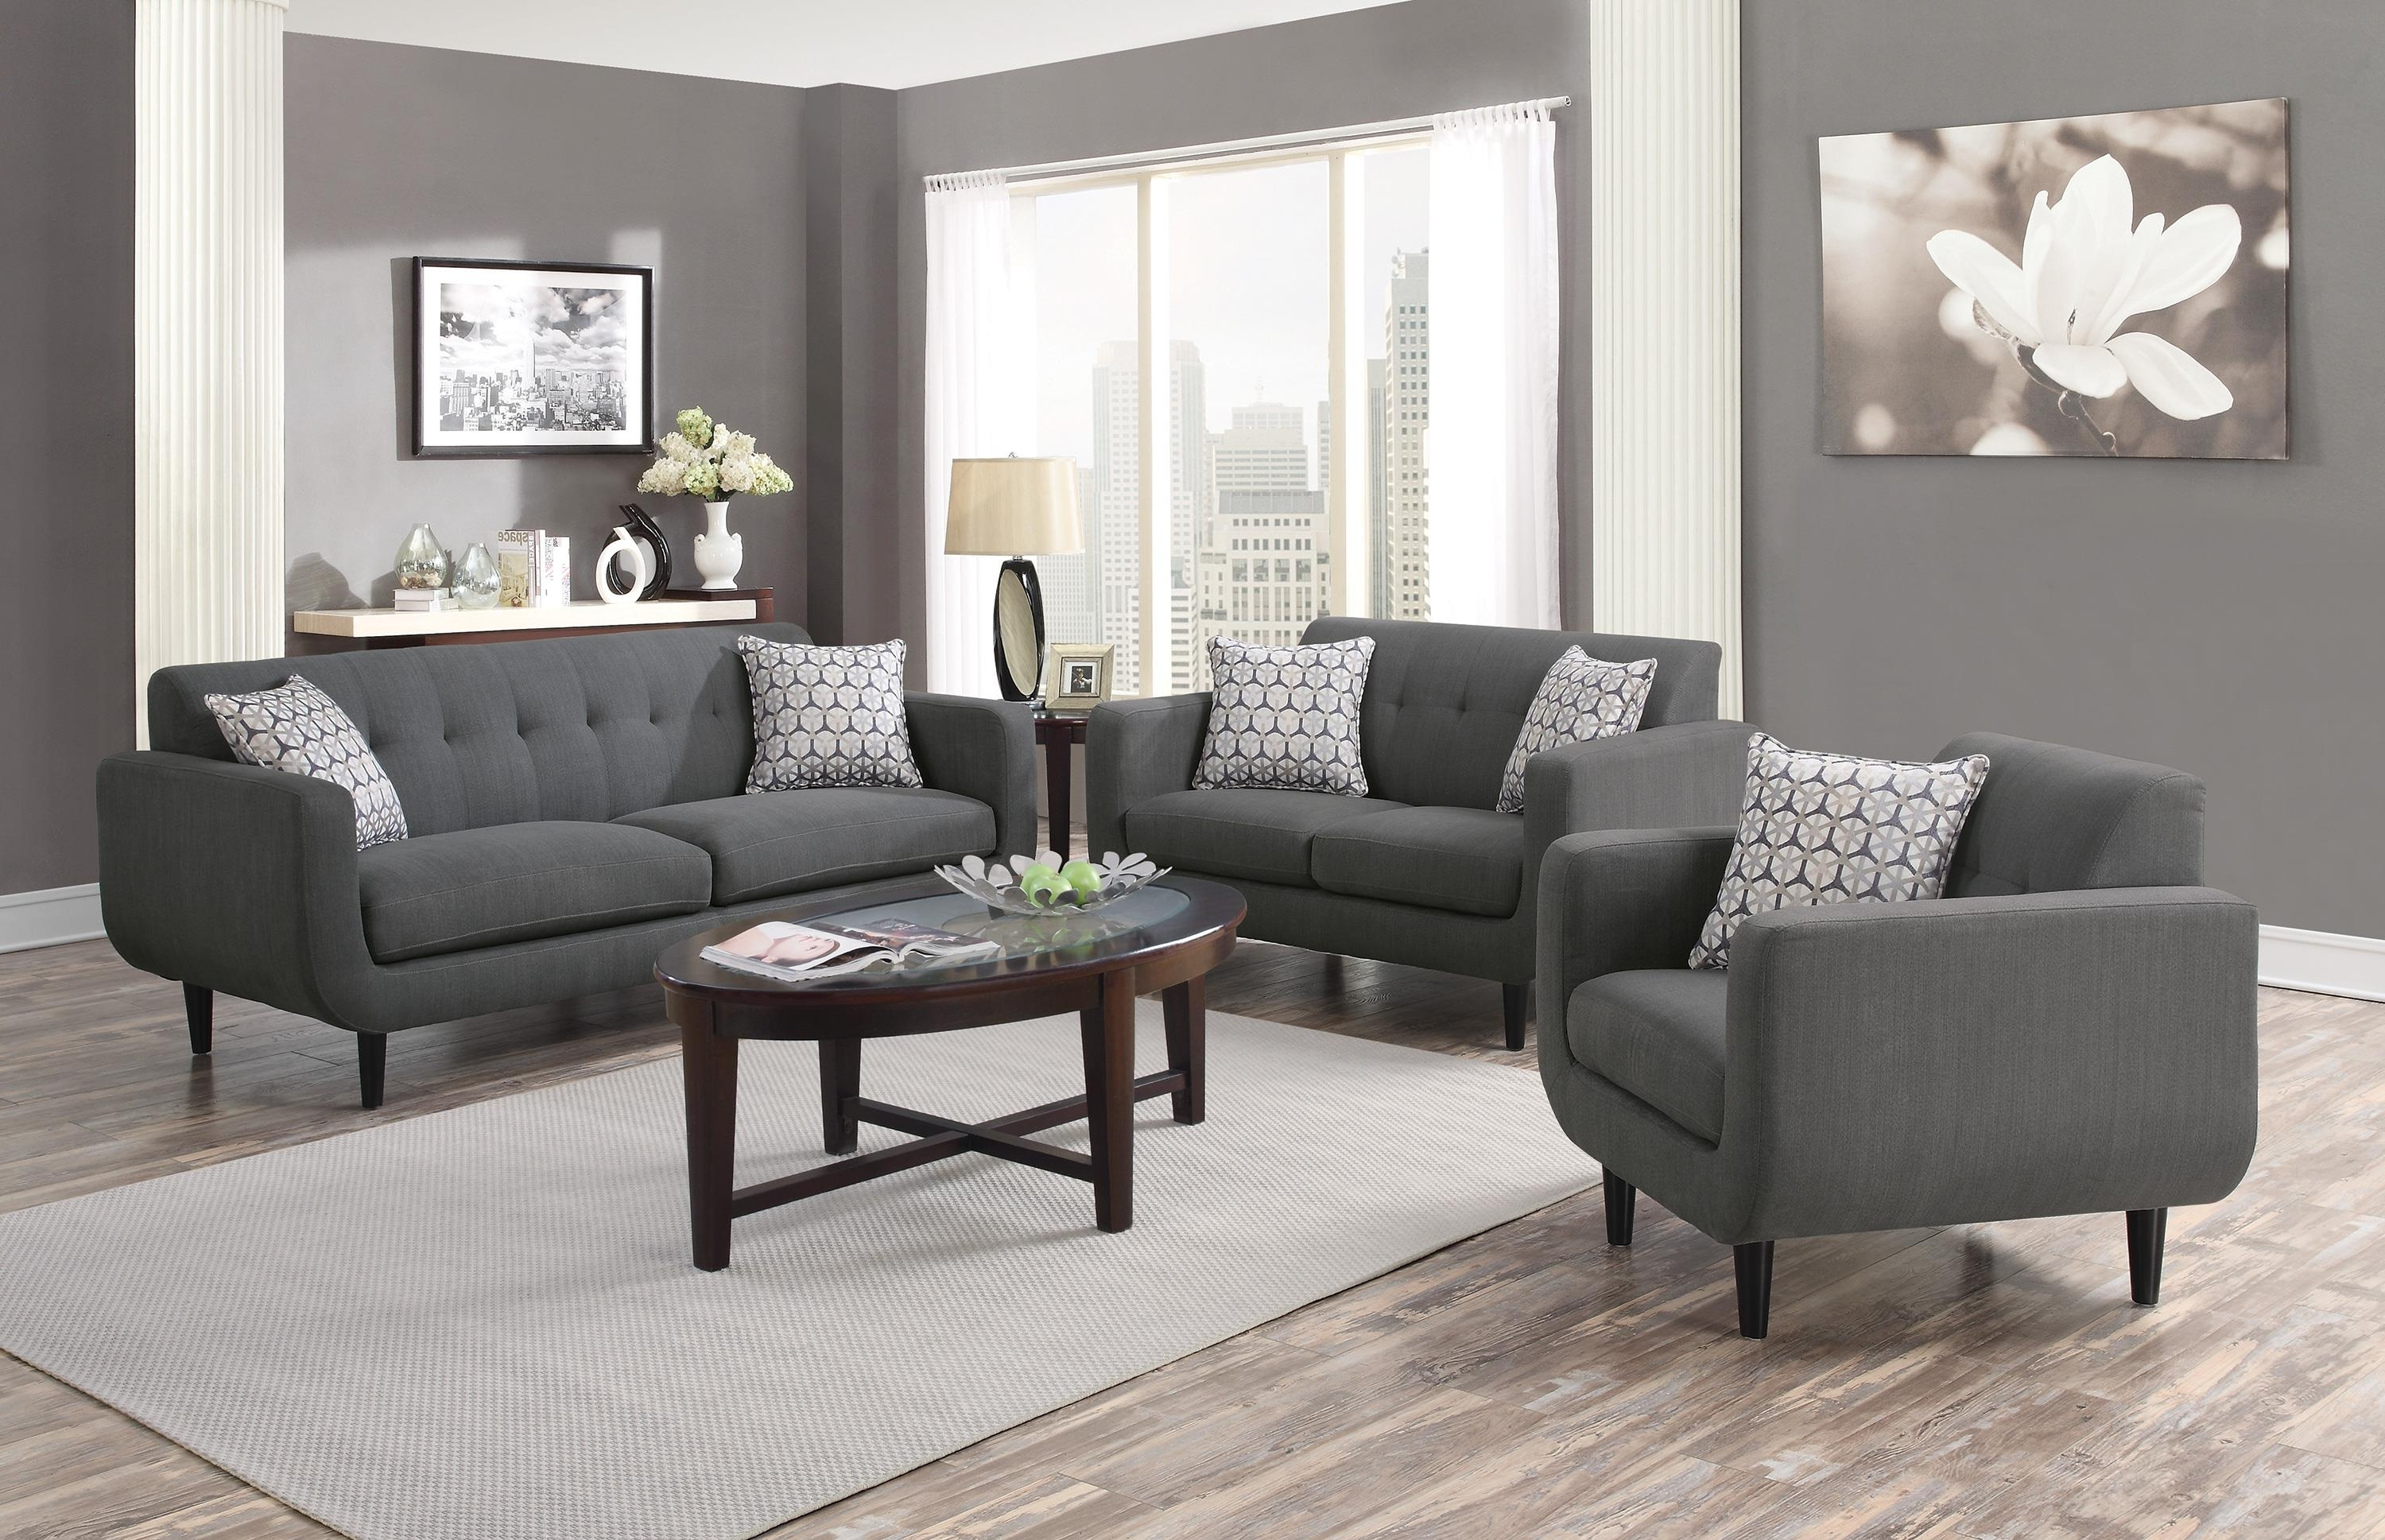 Dallas Texas Sectional Sofas Intended For Famous Coaster Stansall 2Pc Grey Sofa & Loveseat Set Dallas Tx (View 3 of 15)